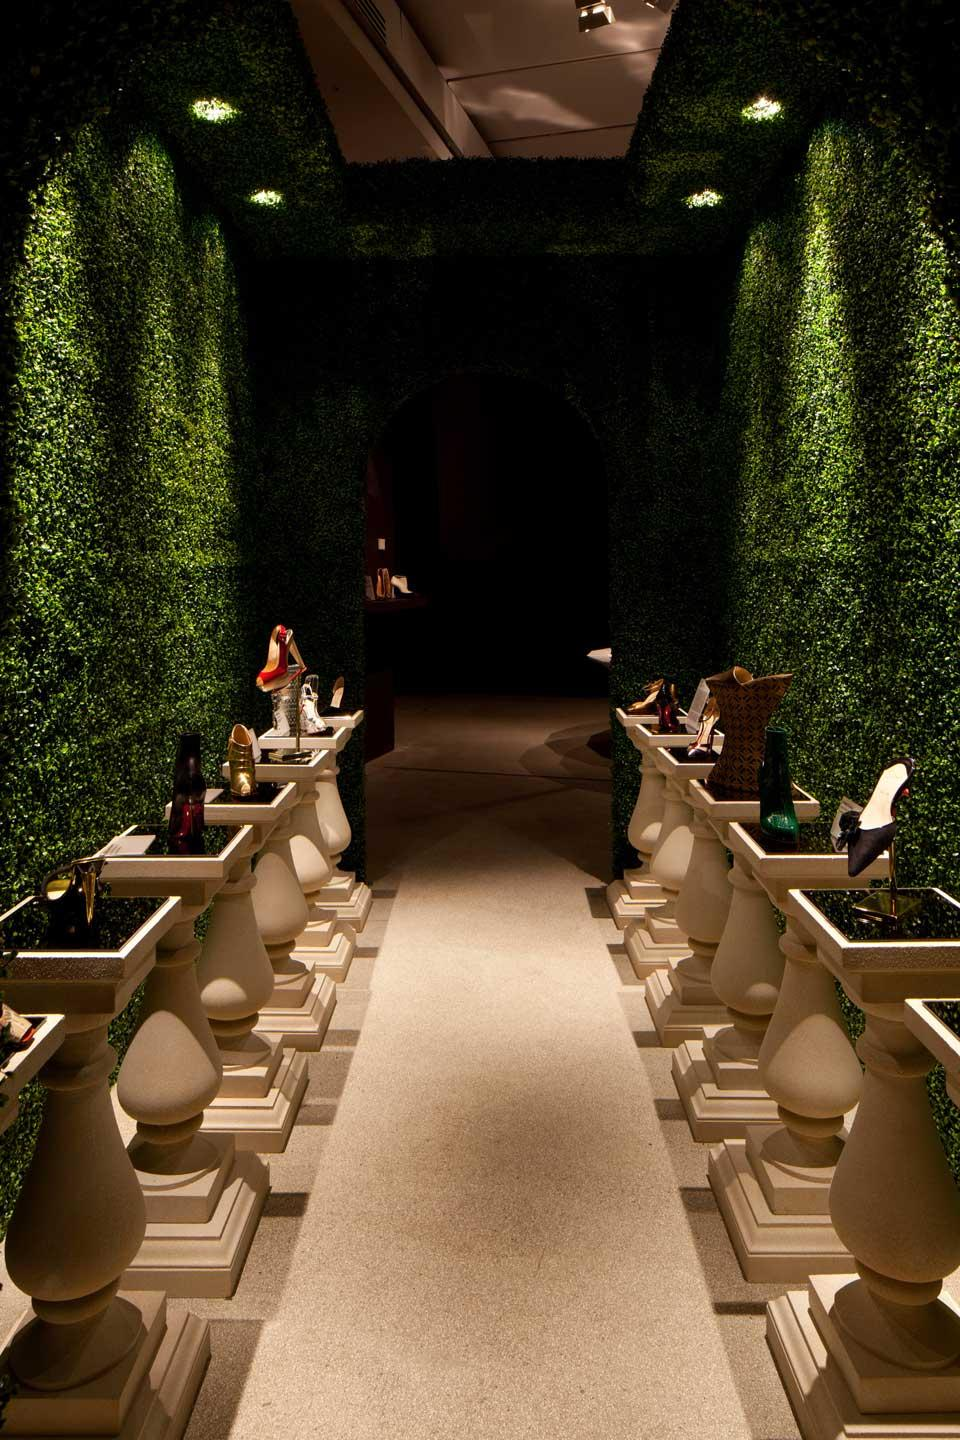 Christian Louboutin at the